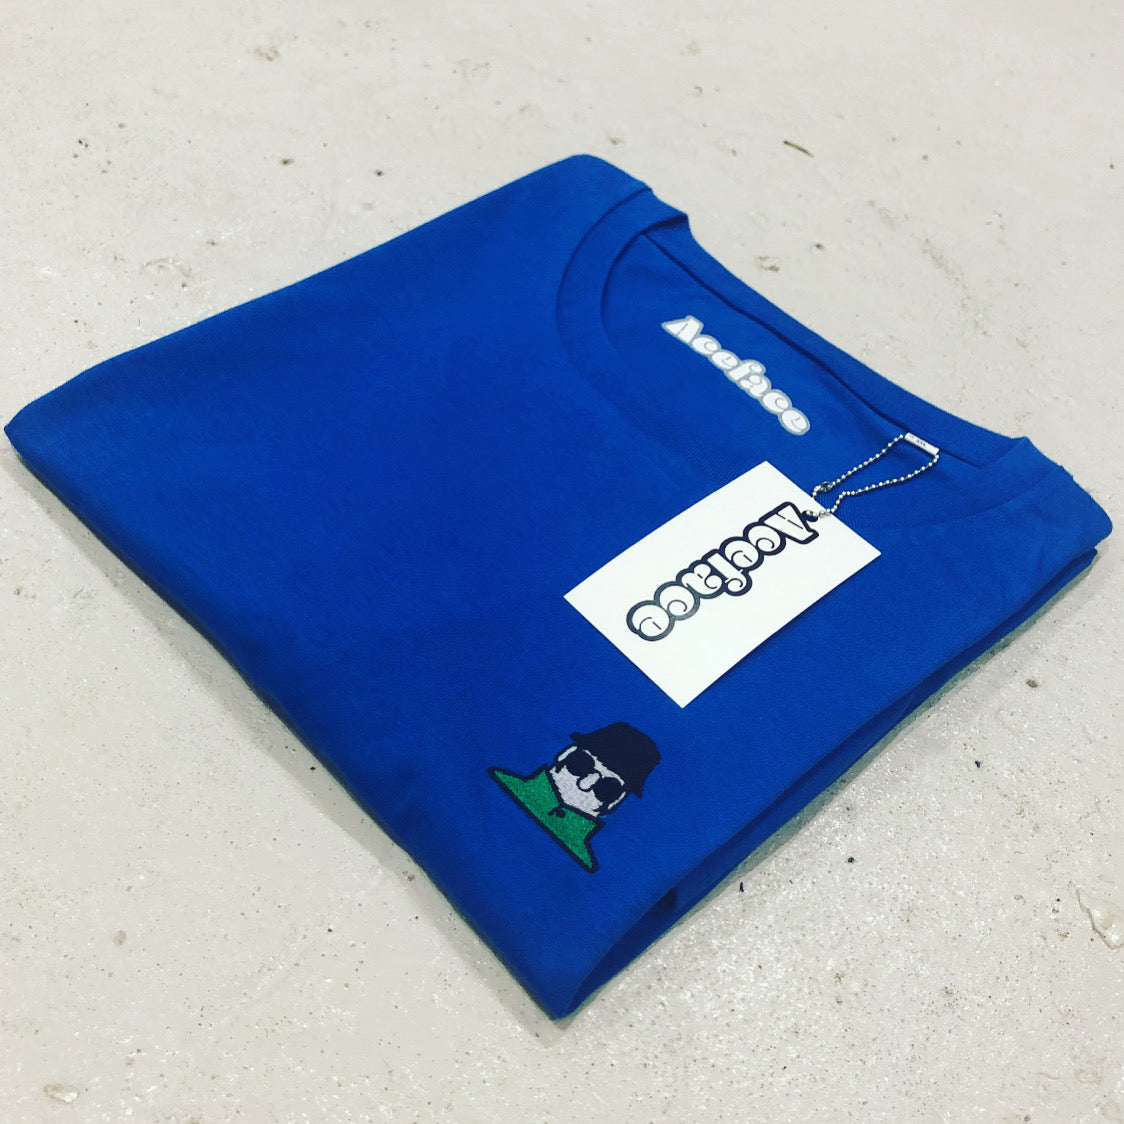 THE ACEFACE CLASSIC BLUE T-SHIRT